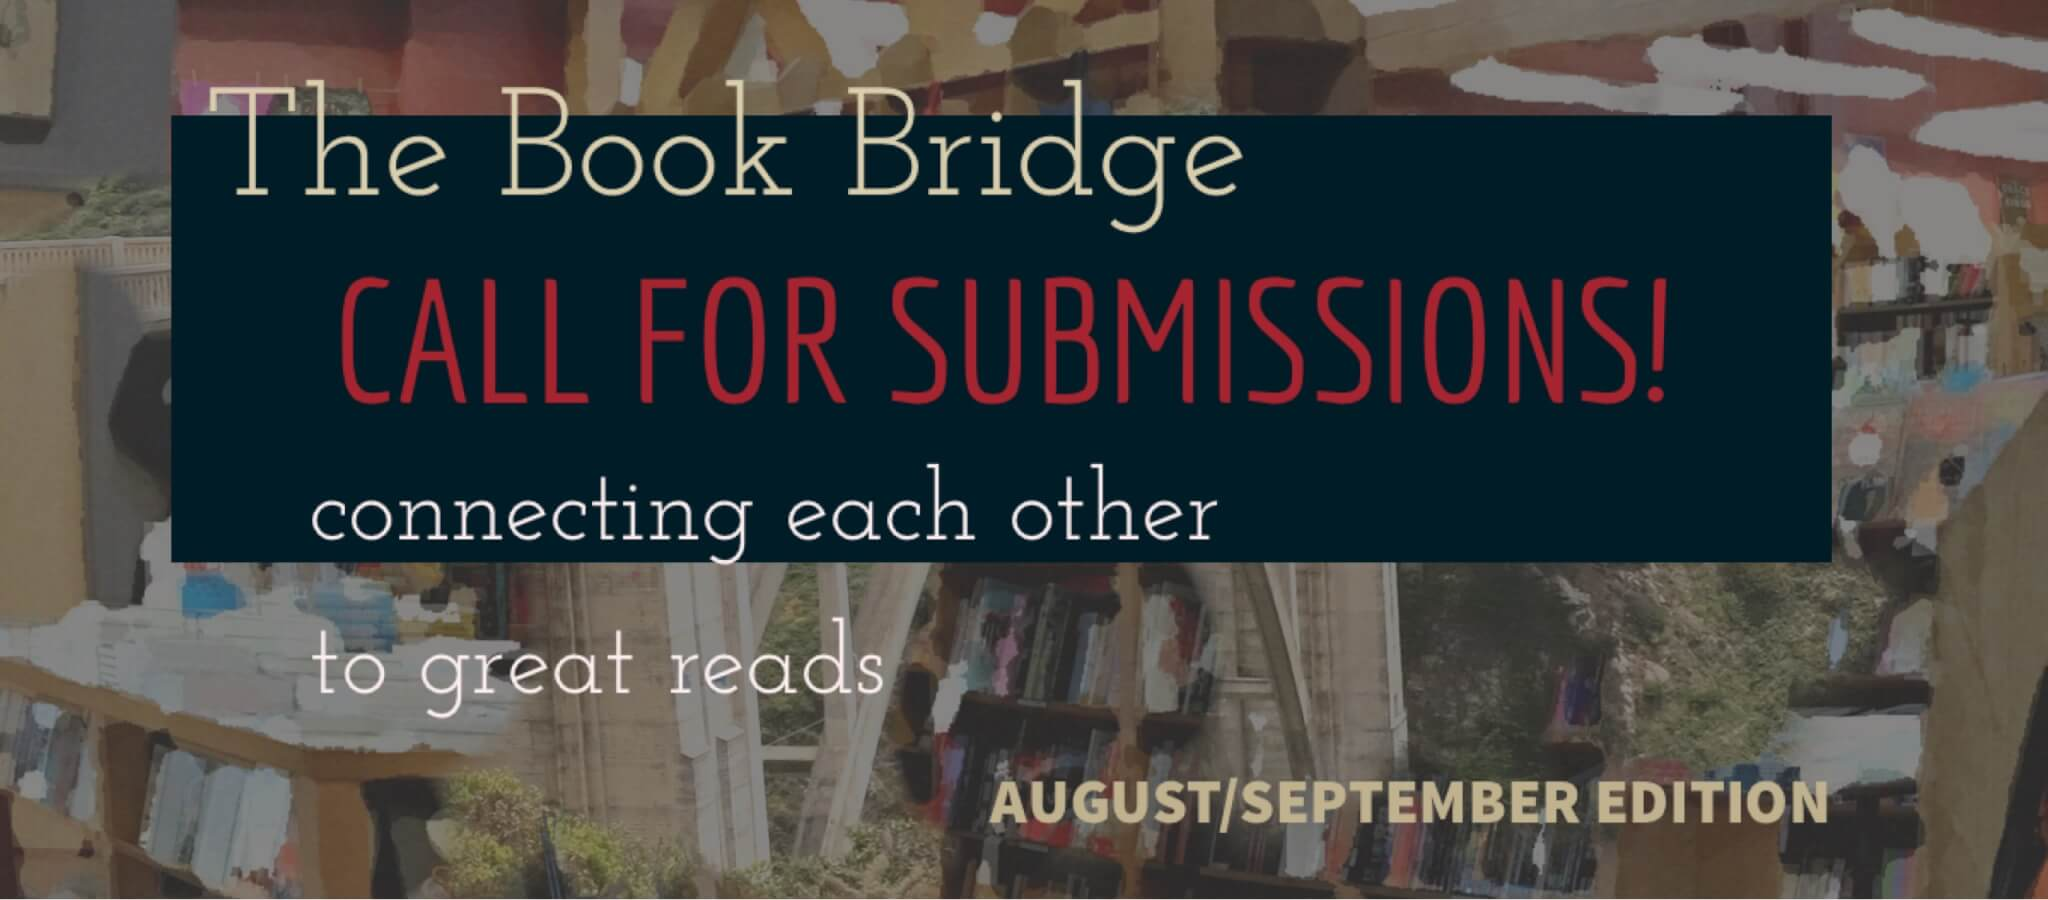 August/September BOOK BRIDGE Submissions…are rolled forward to October